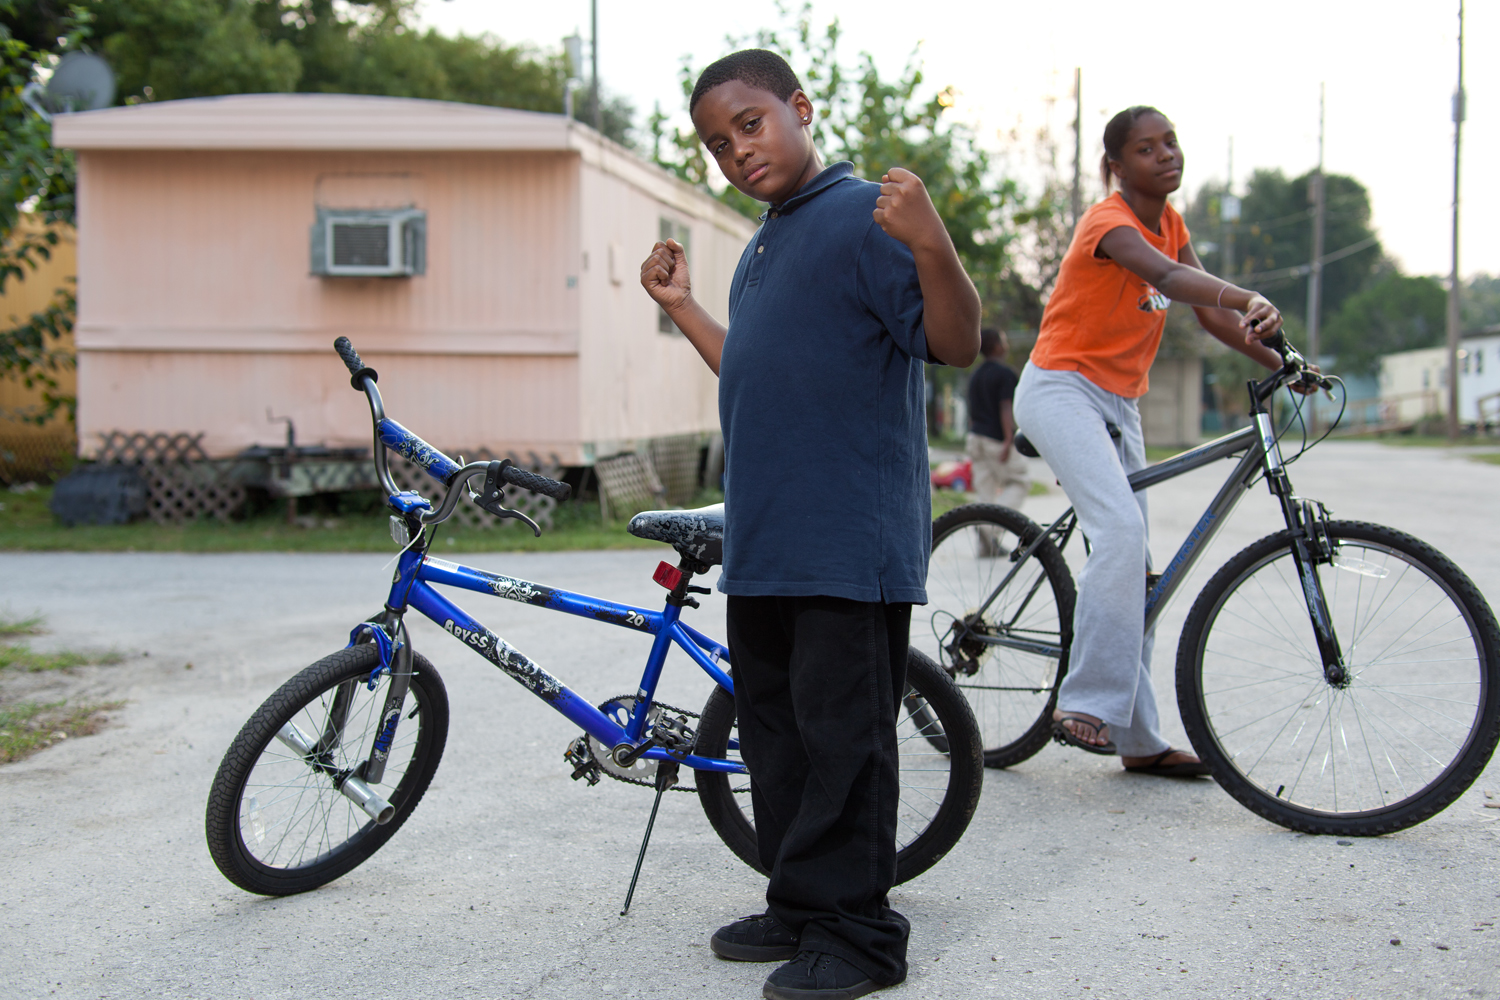 african american bikes male young youth swag